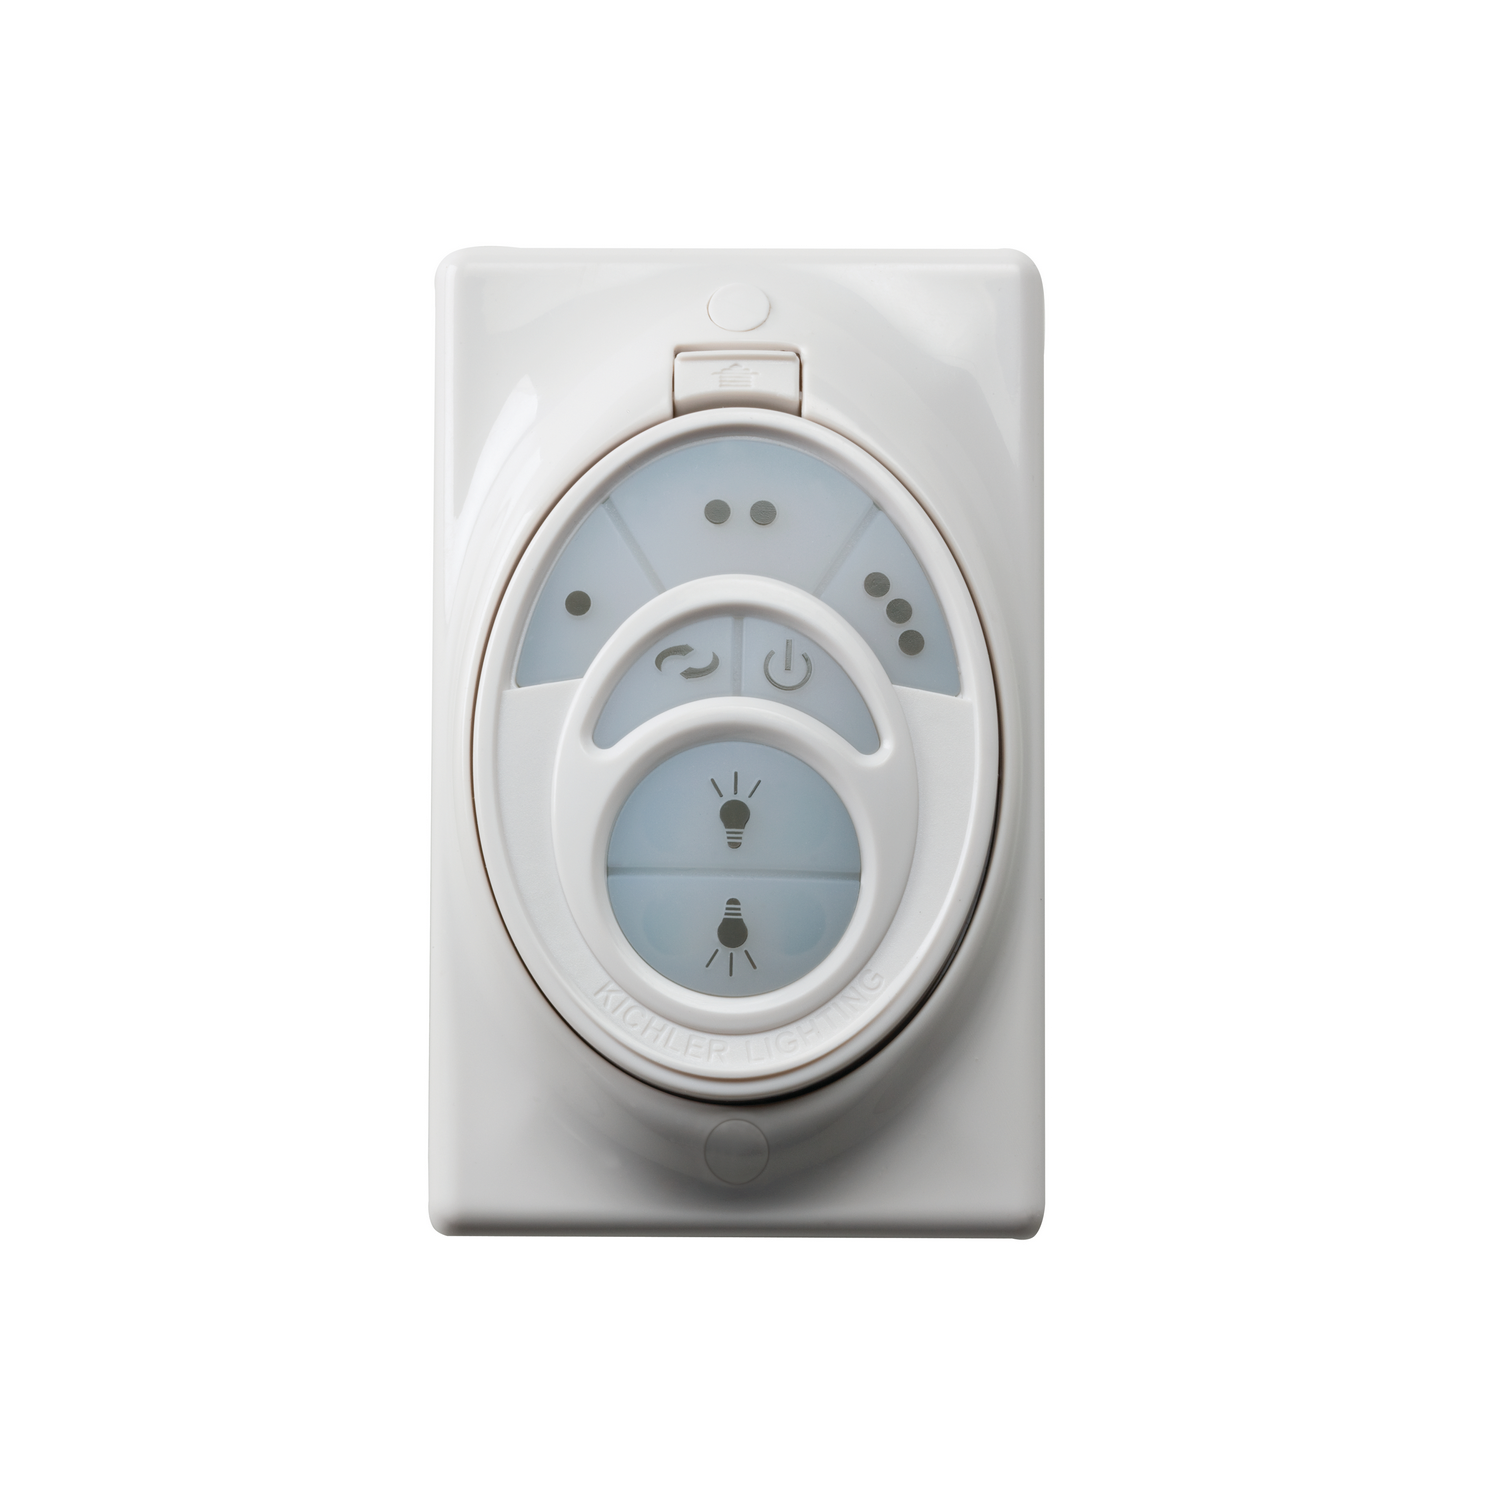 Cool Touch Remote Control Syst from the Accessory collection by Kichler 337009WHTR